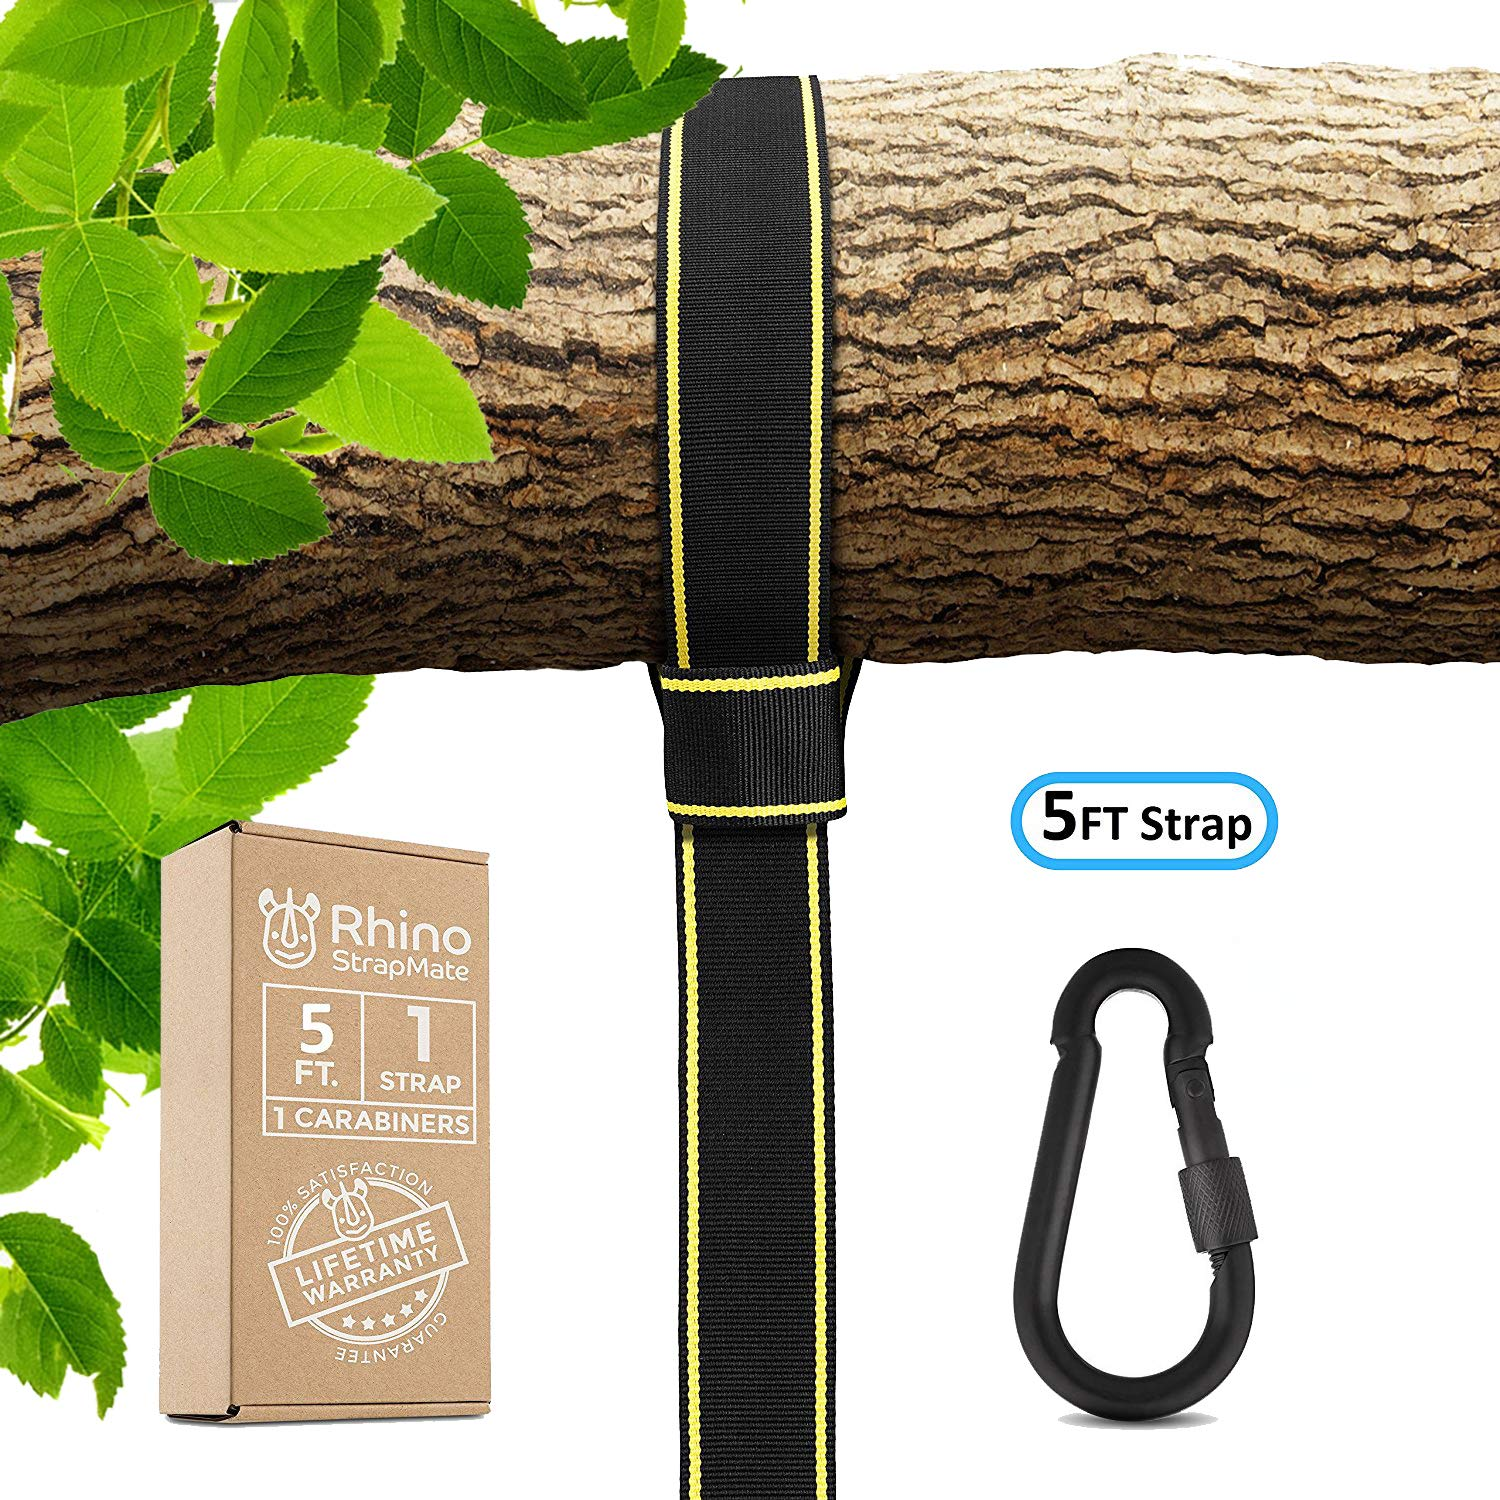 Overmont Tree Swing Hanging Straps Holds 2000 lbs,5ft Extra Long Swing Hanging Strap Kit with Safer Lock Snap Carabiner Hooks Perfect for Tree Swing /& Hammocks Perfect For Swings 5ft - Black